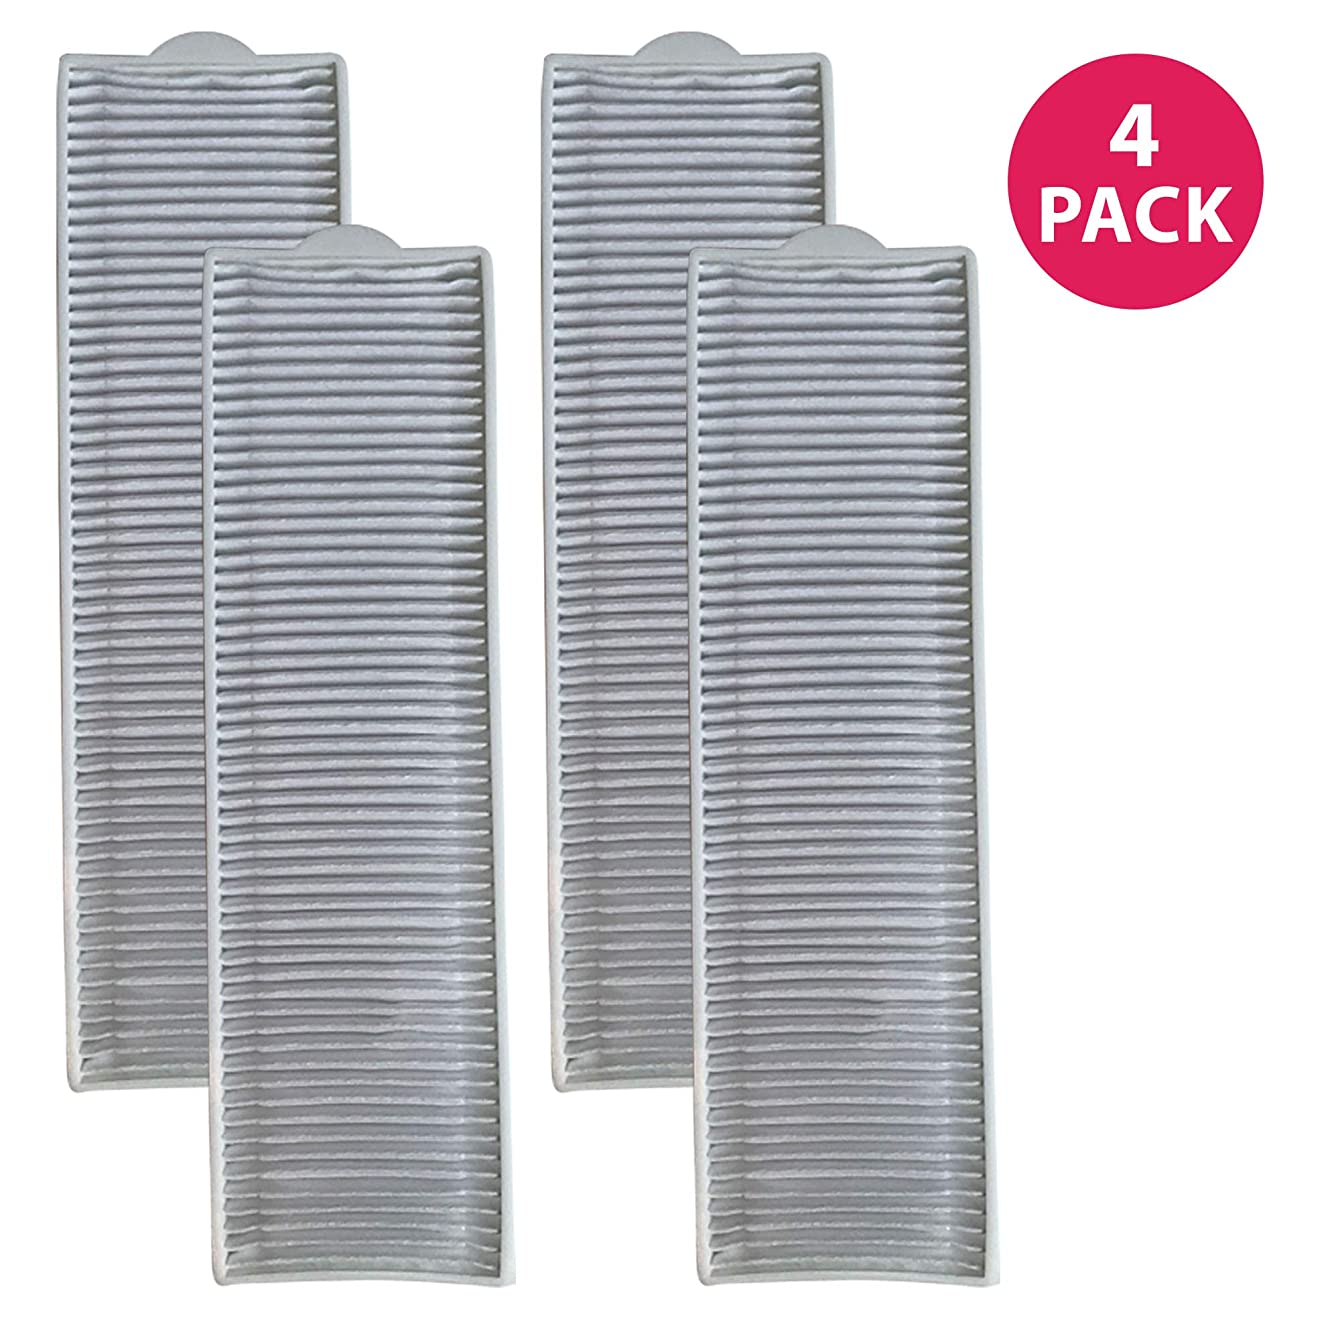 Crucial Vacuum Replacement Filter Parts Compatible with Bissell Filter 8 14, Part 3091 2038093 203-6608 470856 FX HVF090 - HEPA Style, Fits Vacs Momentum Velocity Bagless Upright, Bulk (4 Pack)